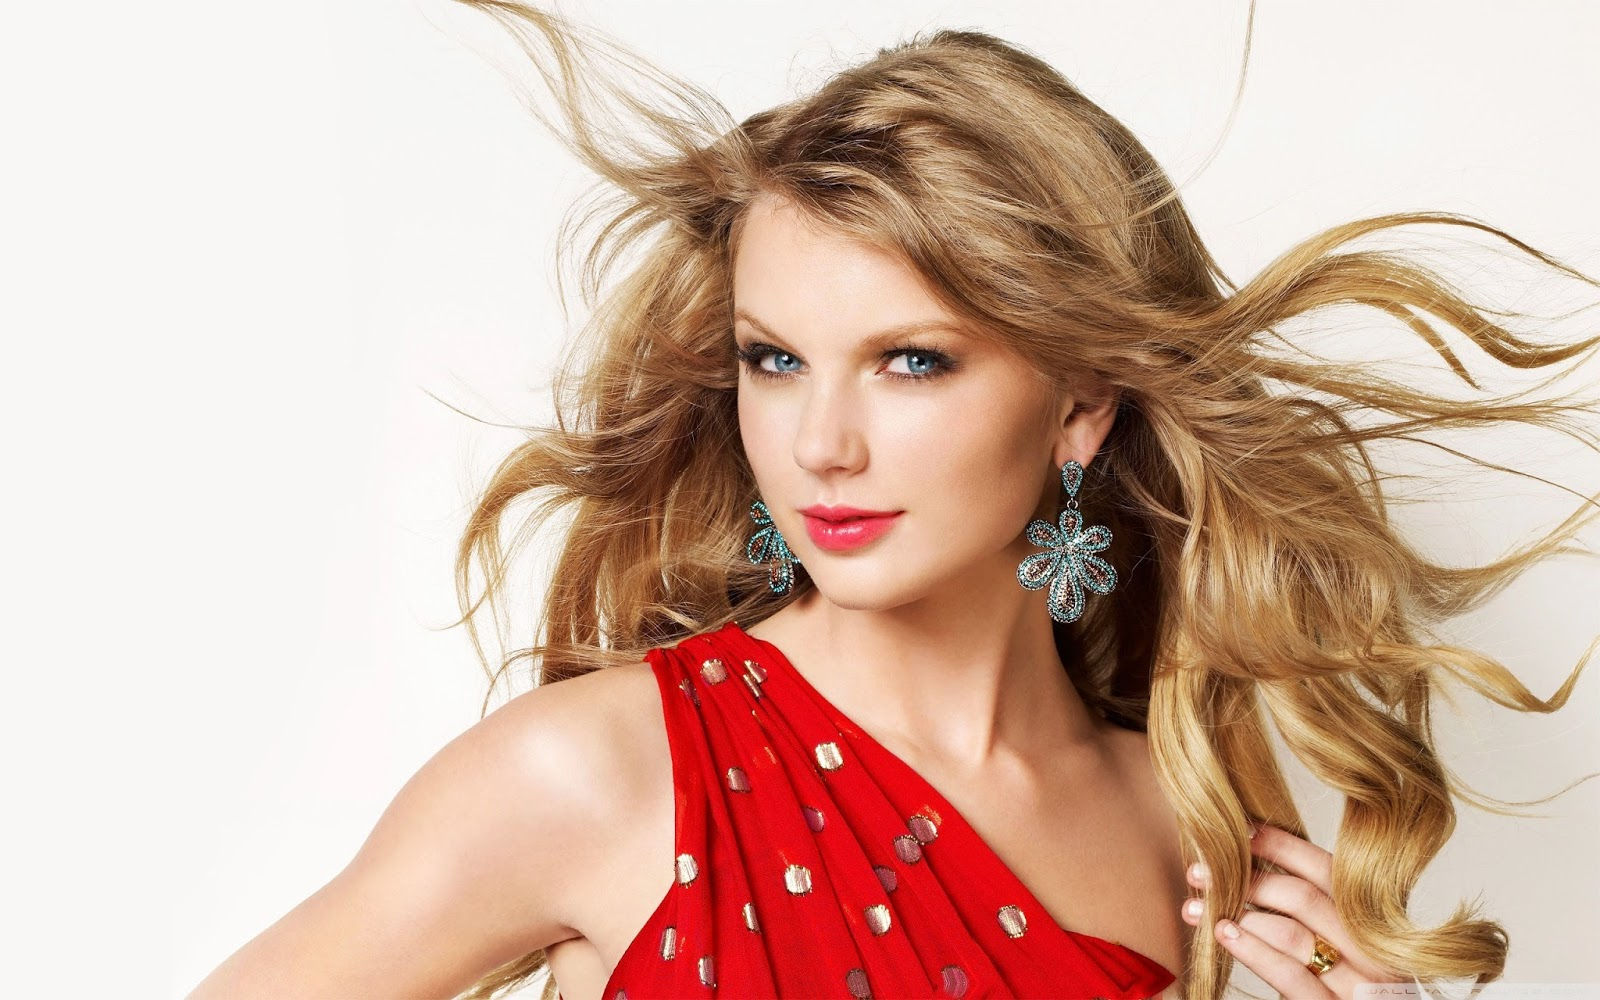 40 best taylor swift celebrity hd wallpapers | explore wallpaper